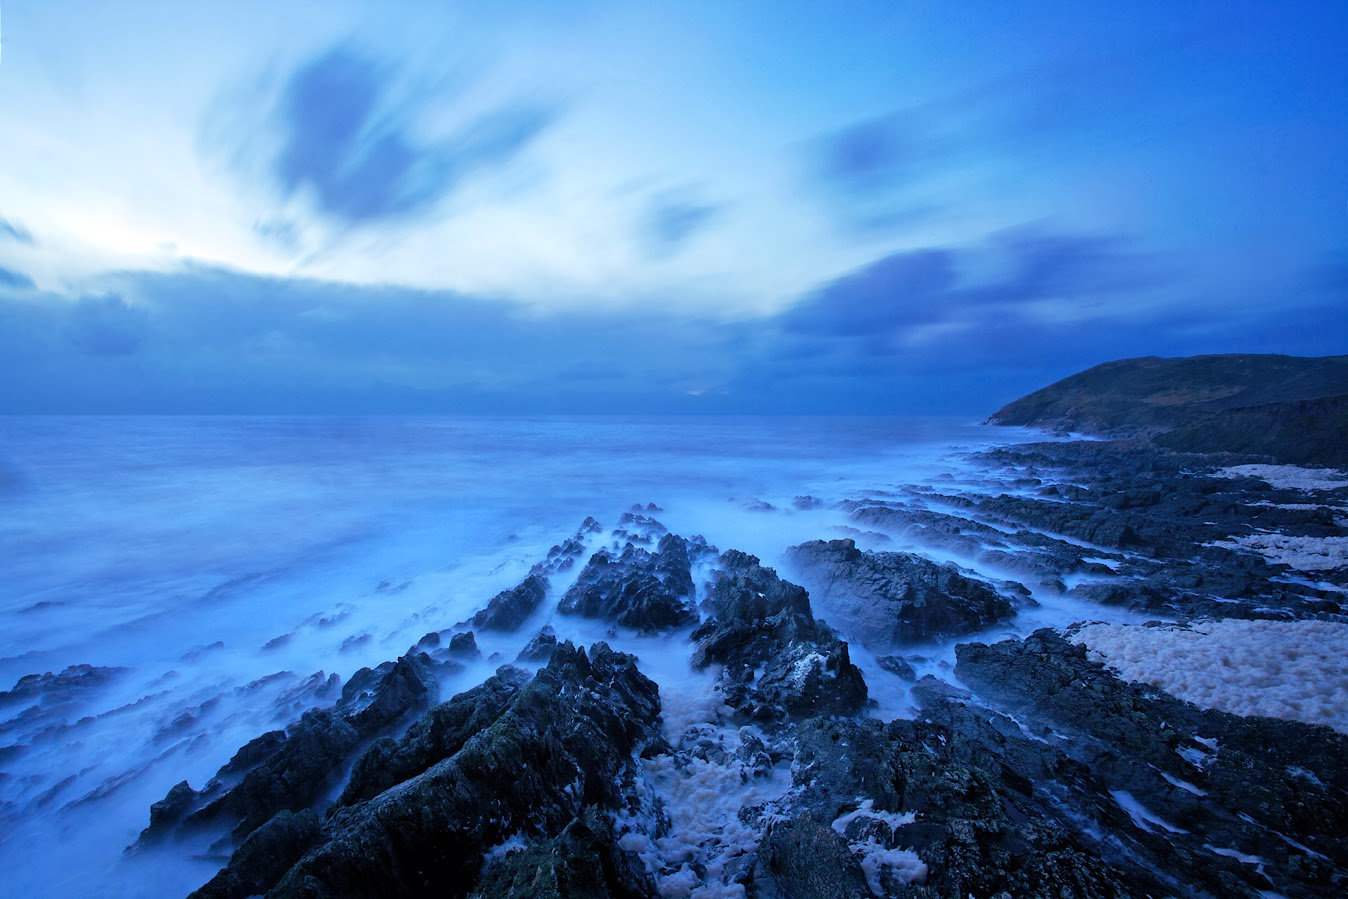 Croyde bay at night